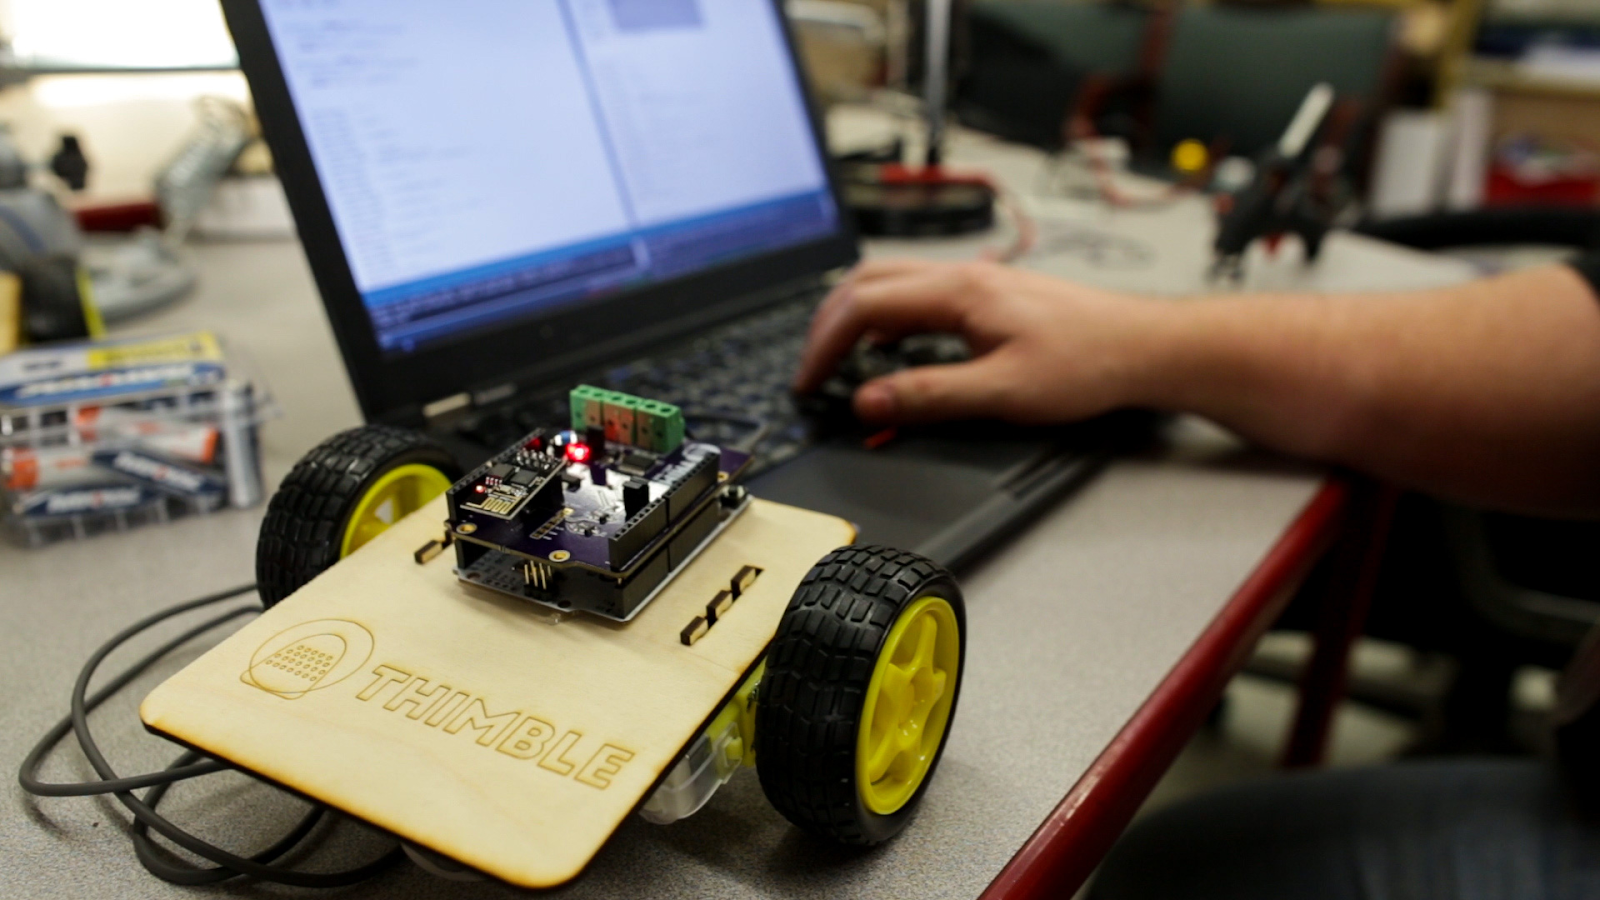 A completed Thimble wifi robot kit sits on a table beside a computer.